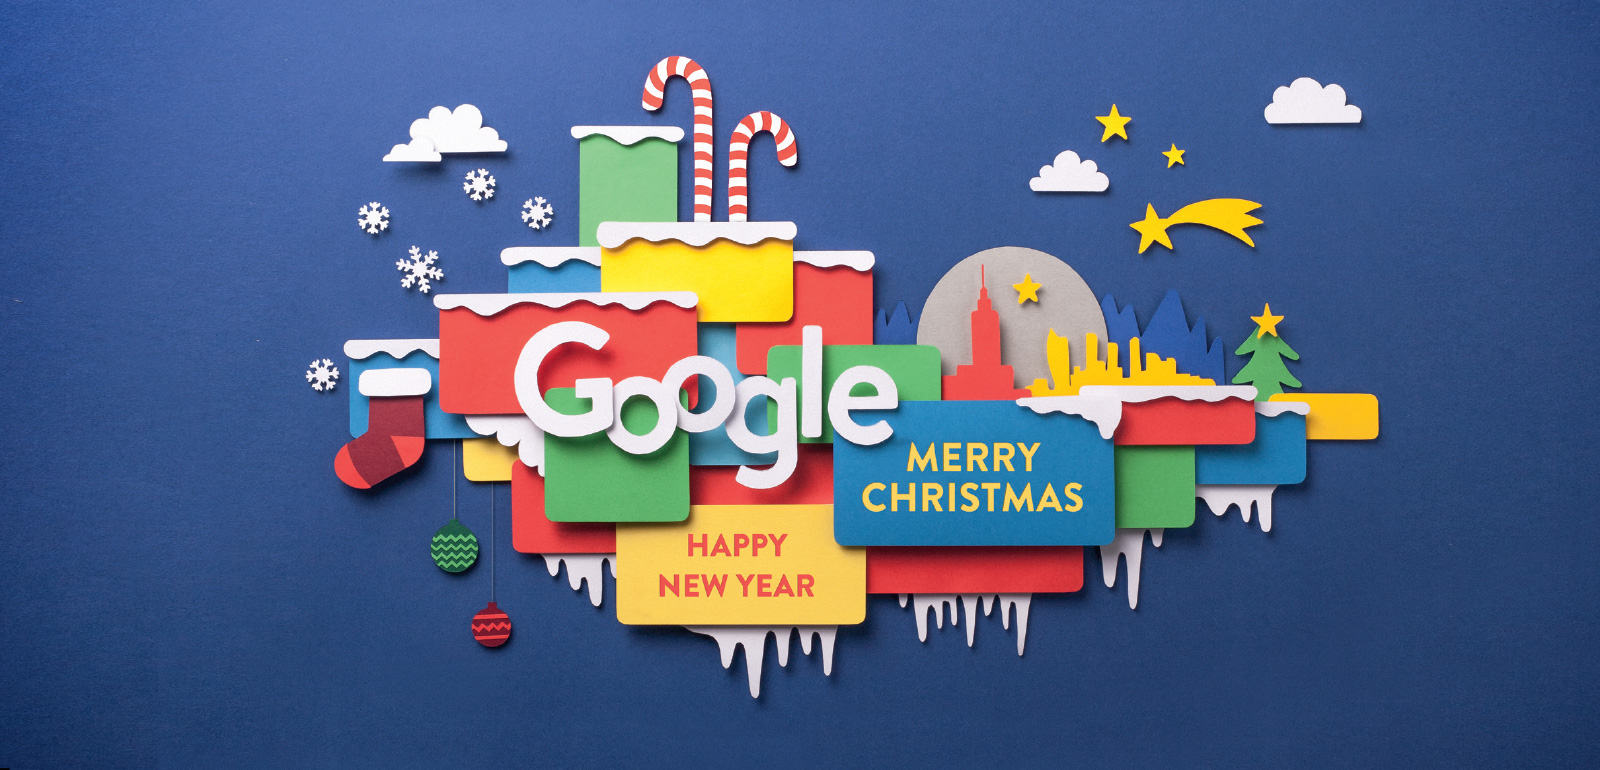 google poland christmas card dedadi